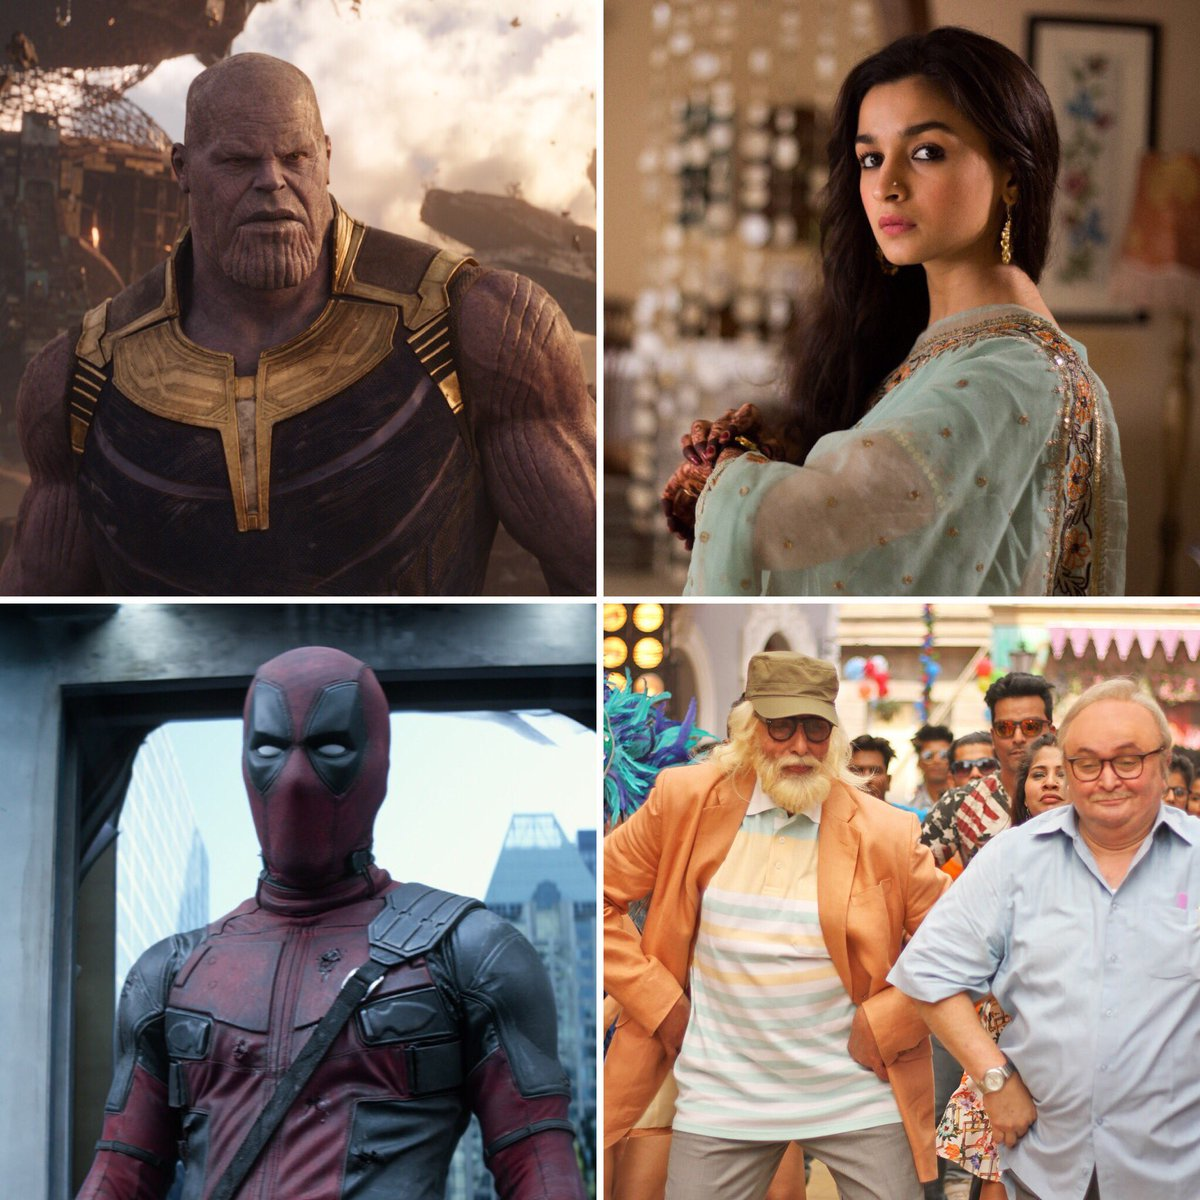 test Twitter Media - #Avengers, #102NotOut, #Raazi, #Deadpool2... The winning streak continues... More to come this year... Picture abhi baaki hain... My analysis for Bollywood Hungama: https://t.co/um40SwS4I5 https://t.co/lNnQWr4OeU